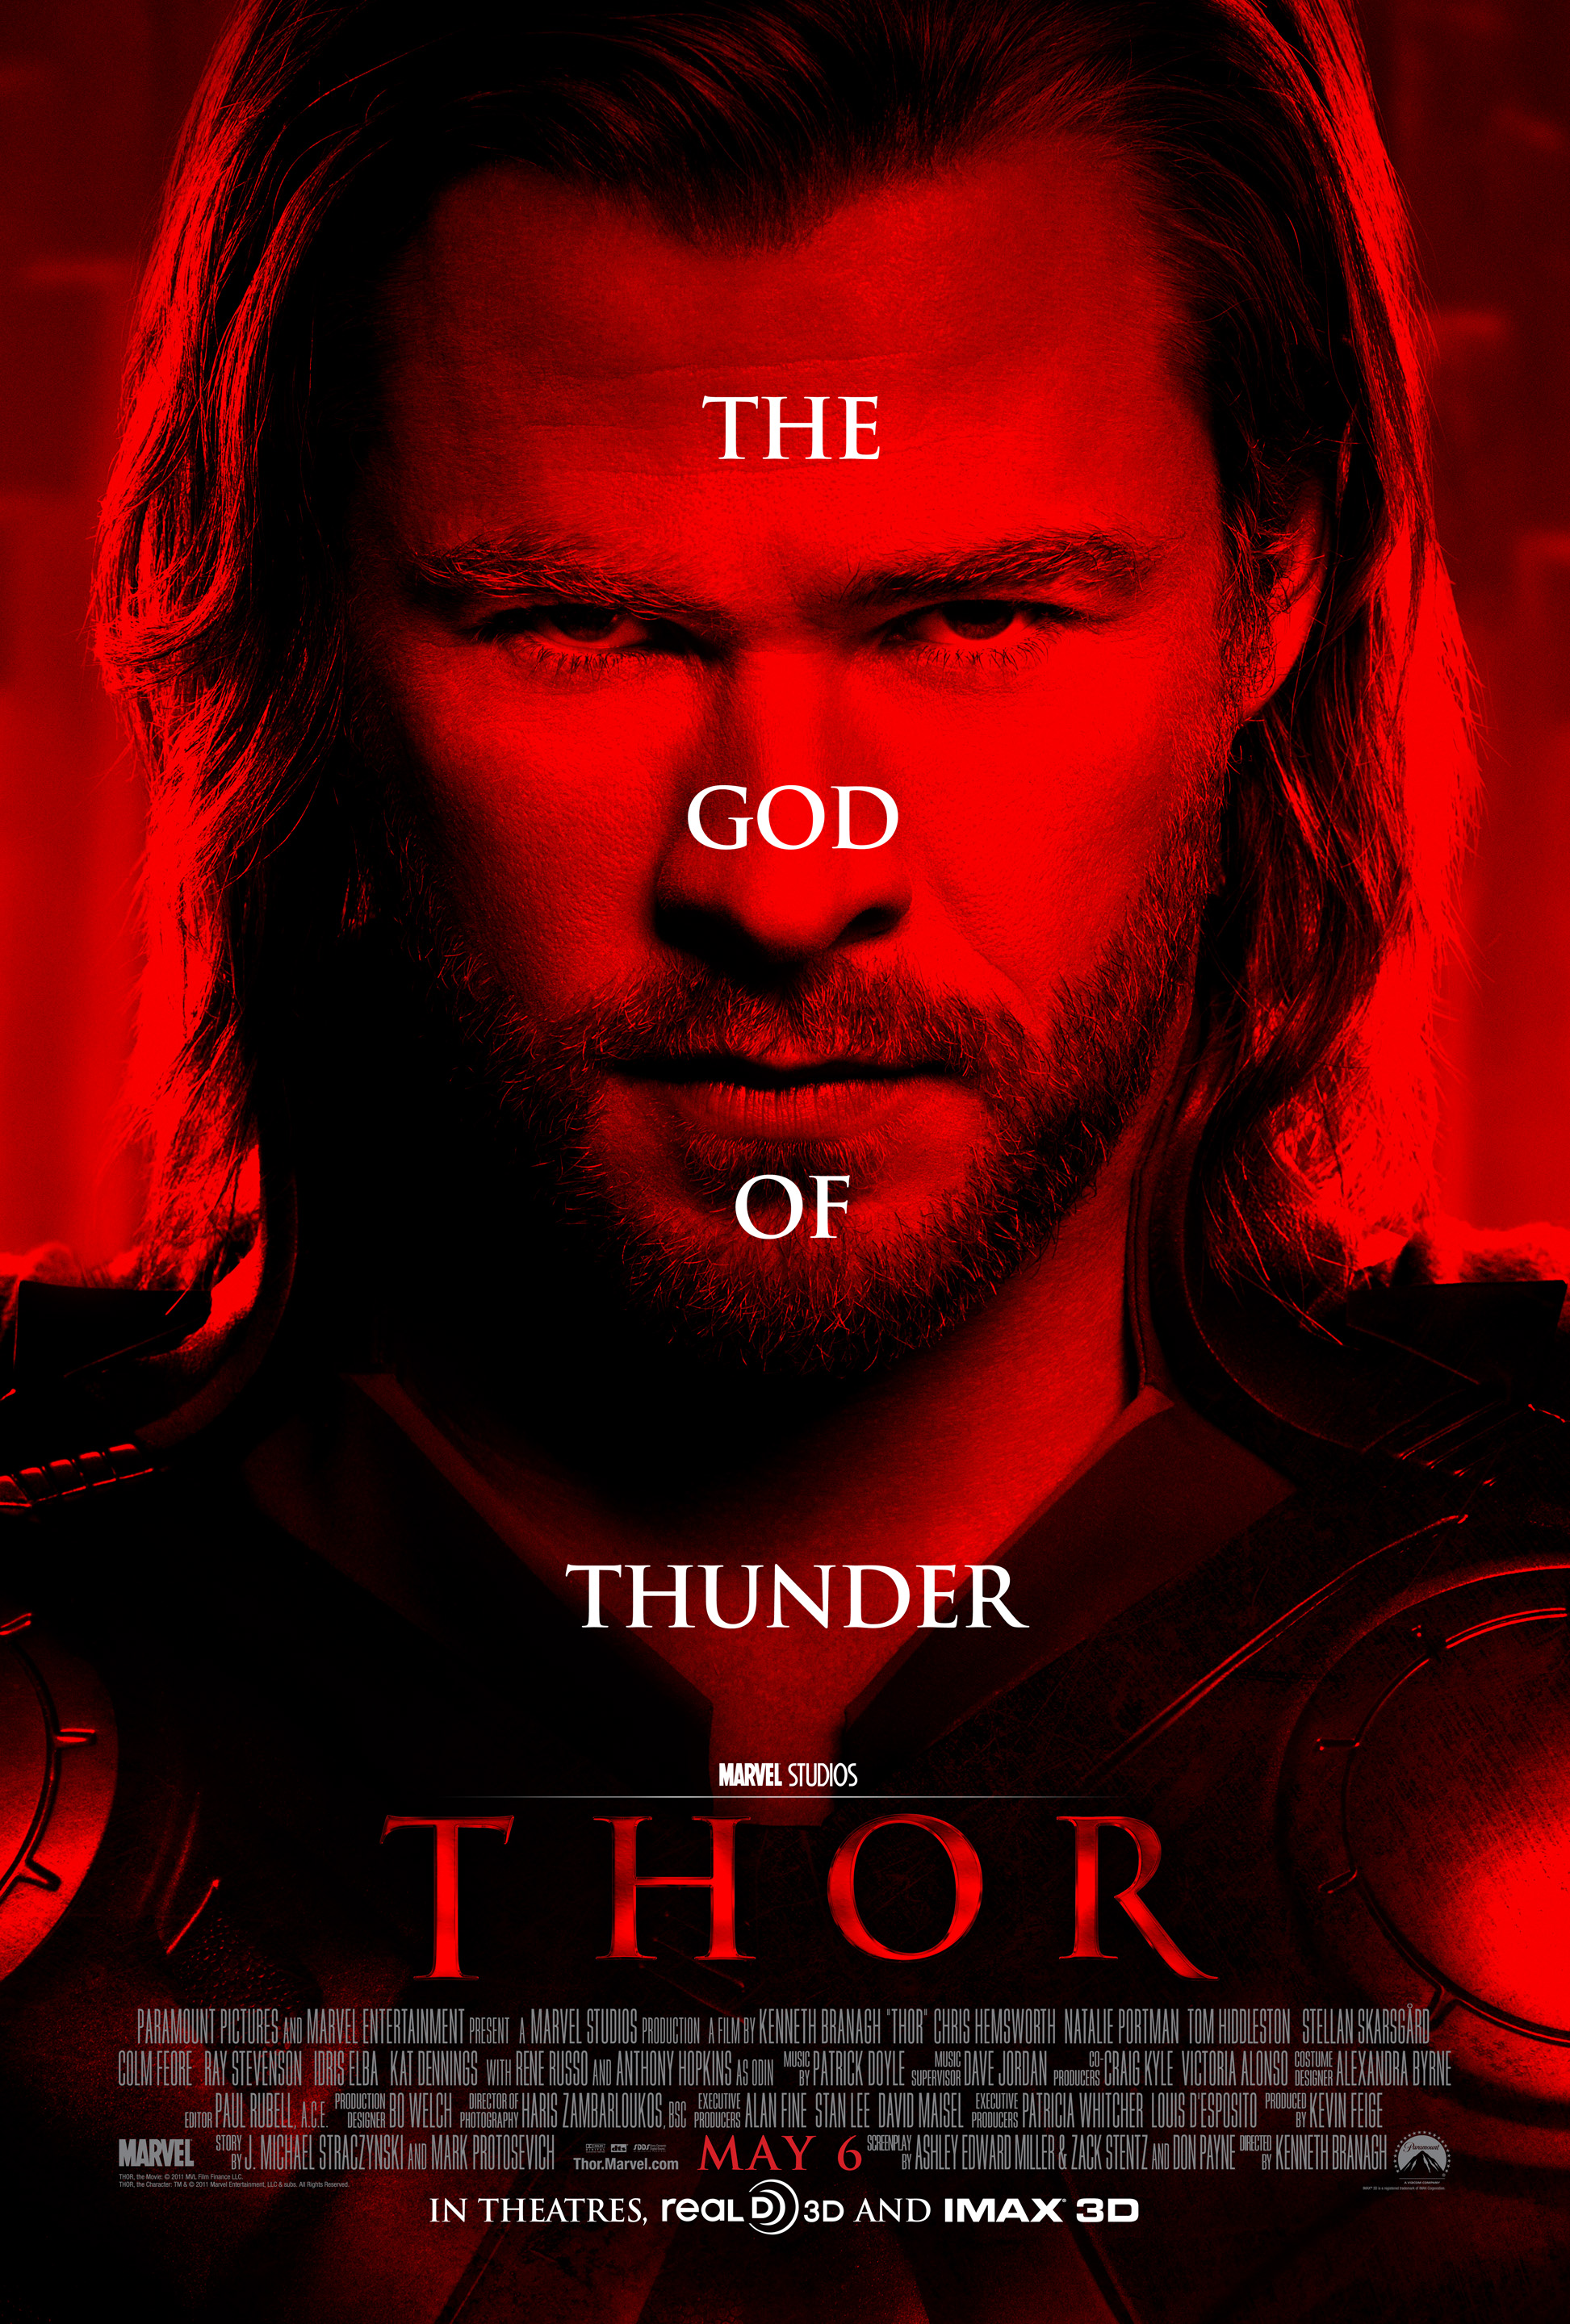 Thor Like Movies 7 Thor – This Was The Movie i